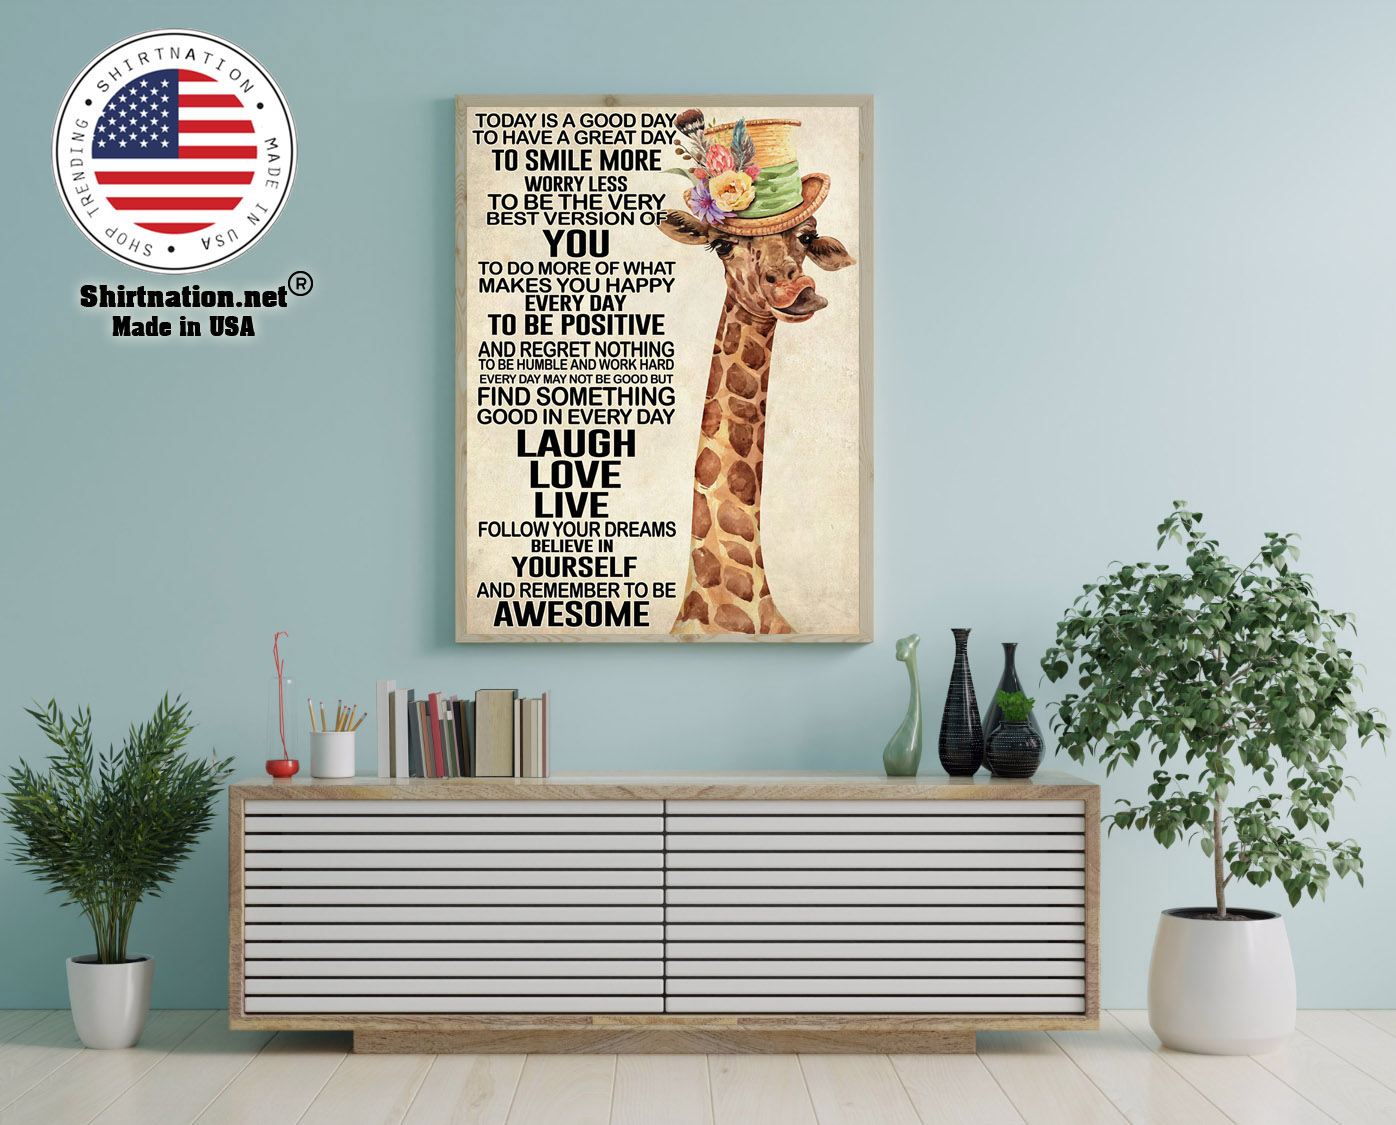 Giraffe today is a good day to have a great day poster 12